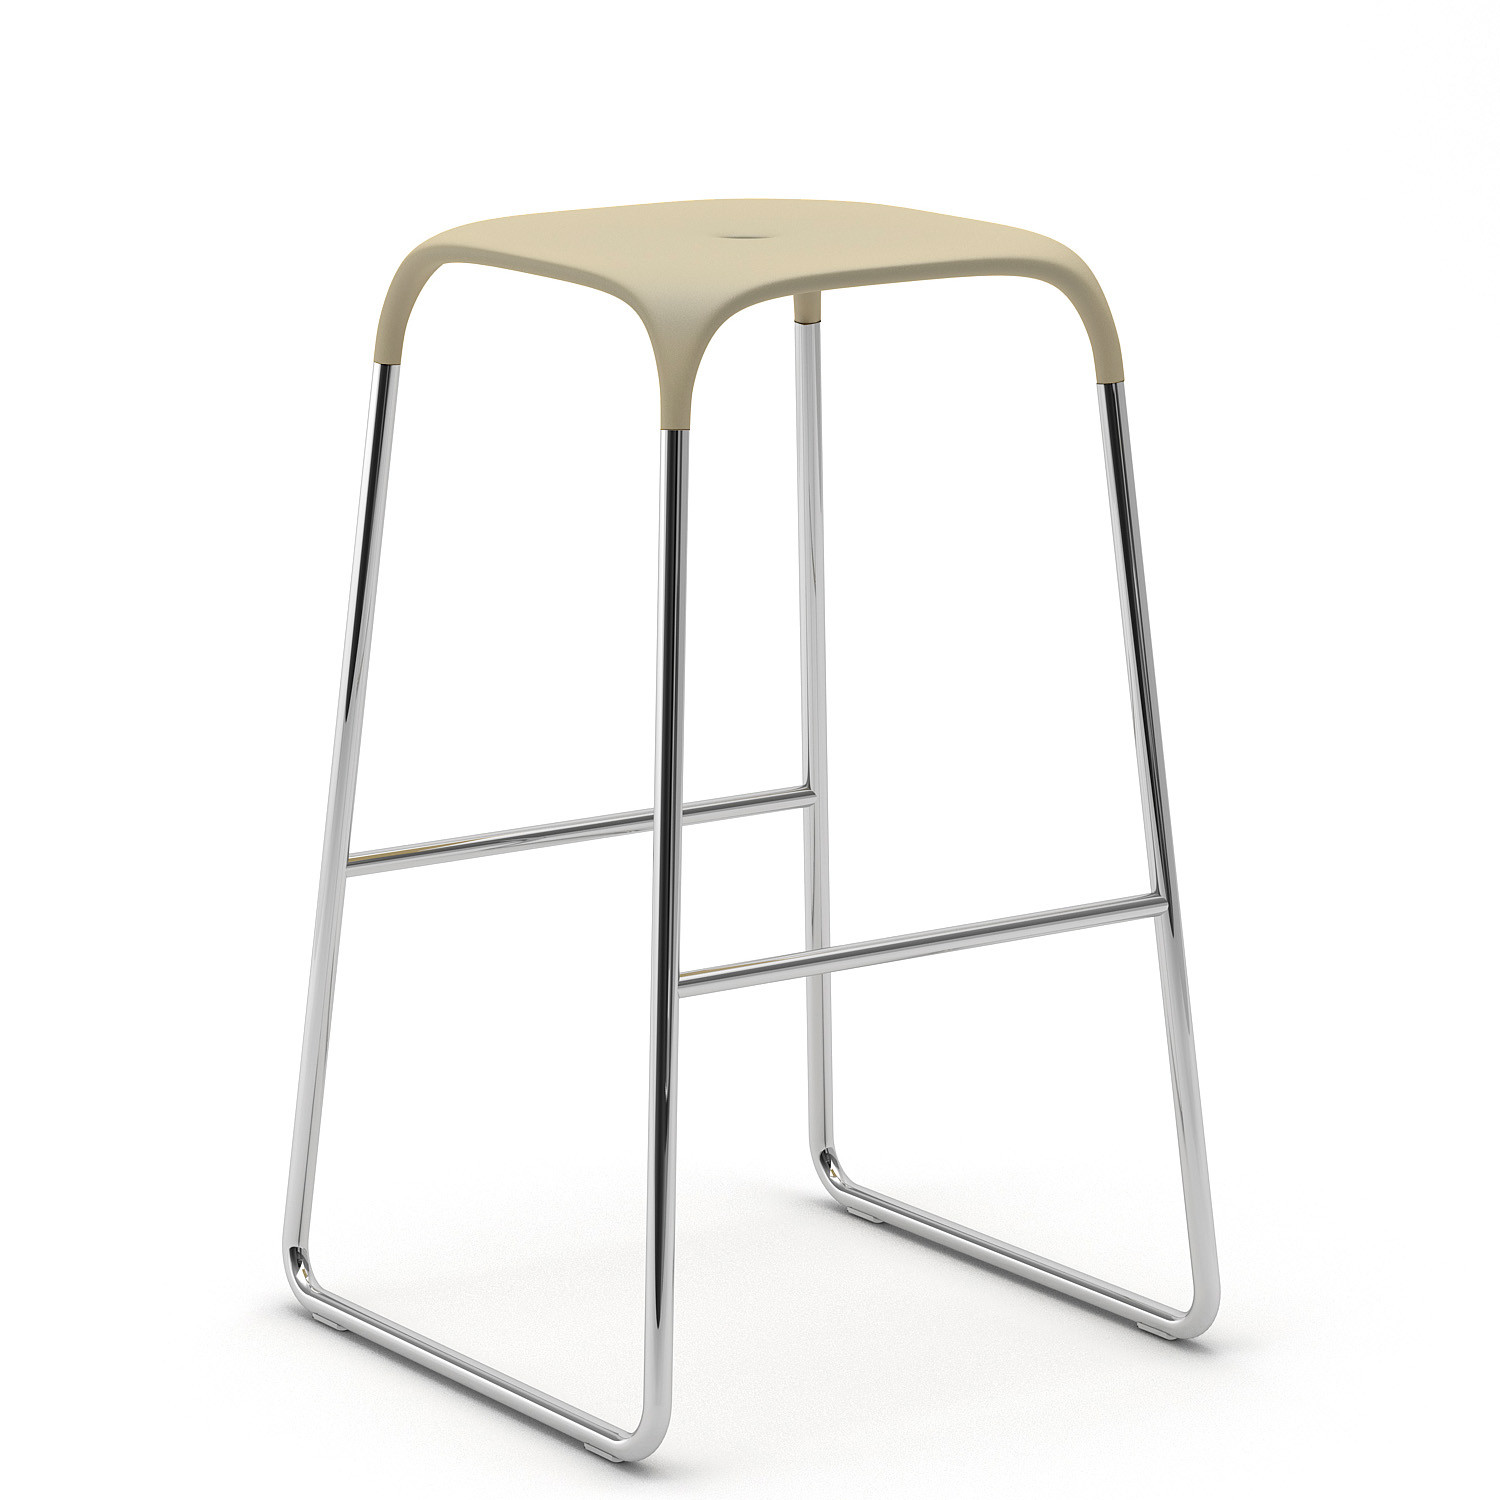 Bobo Breakout Seating by Connection